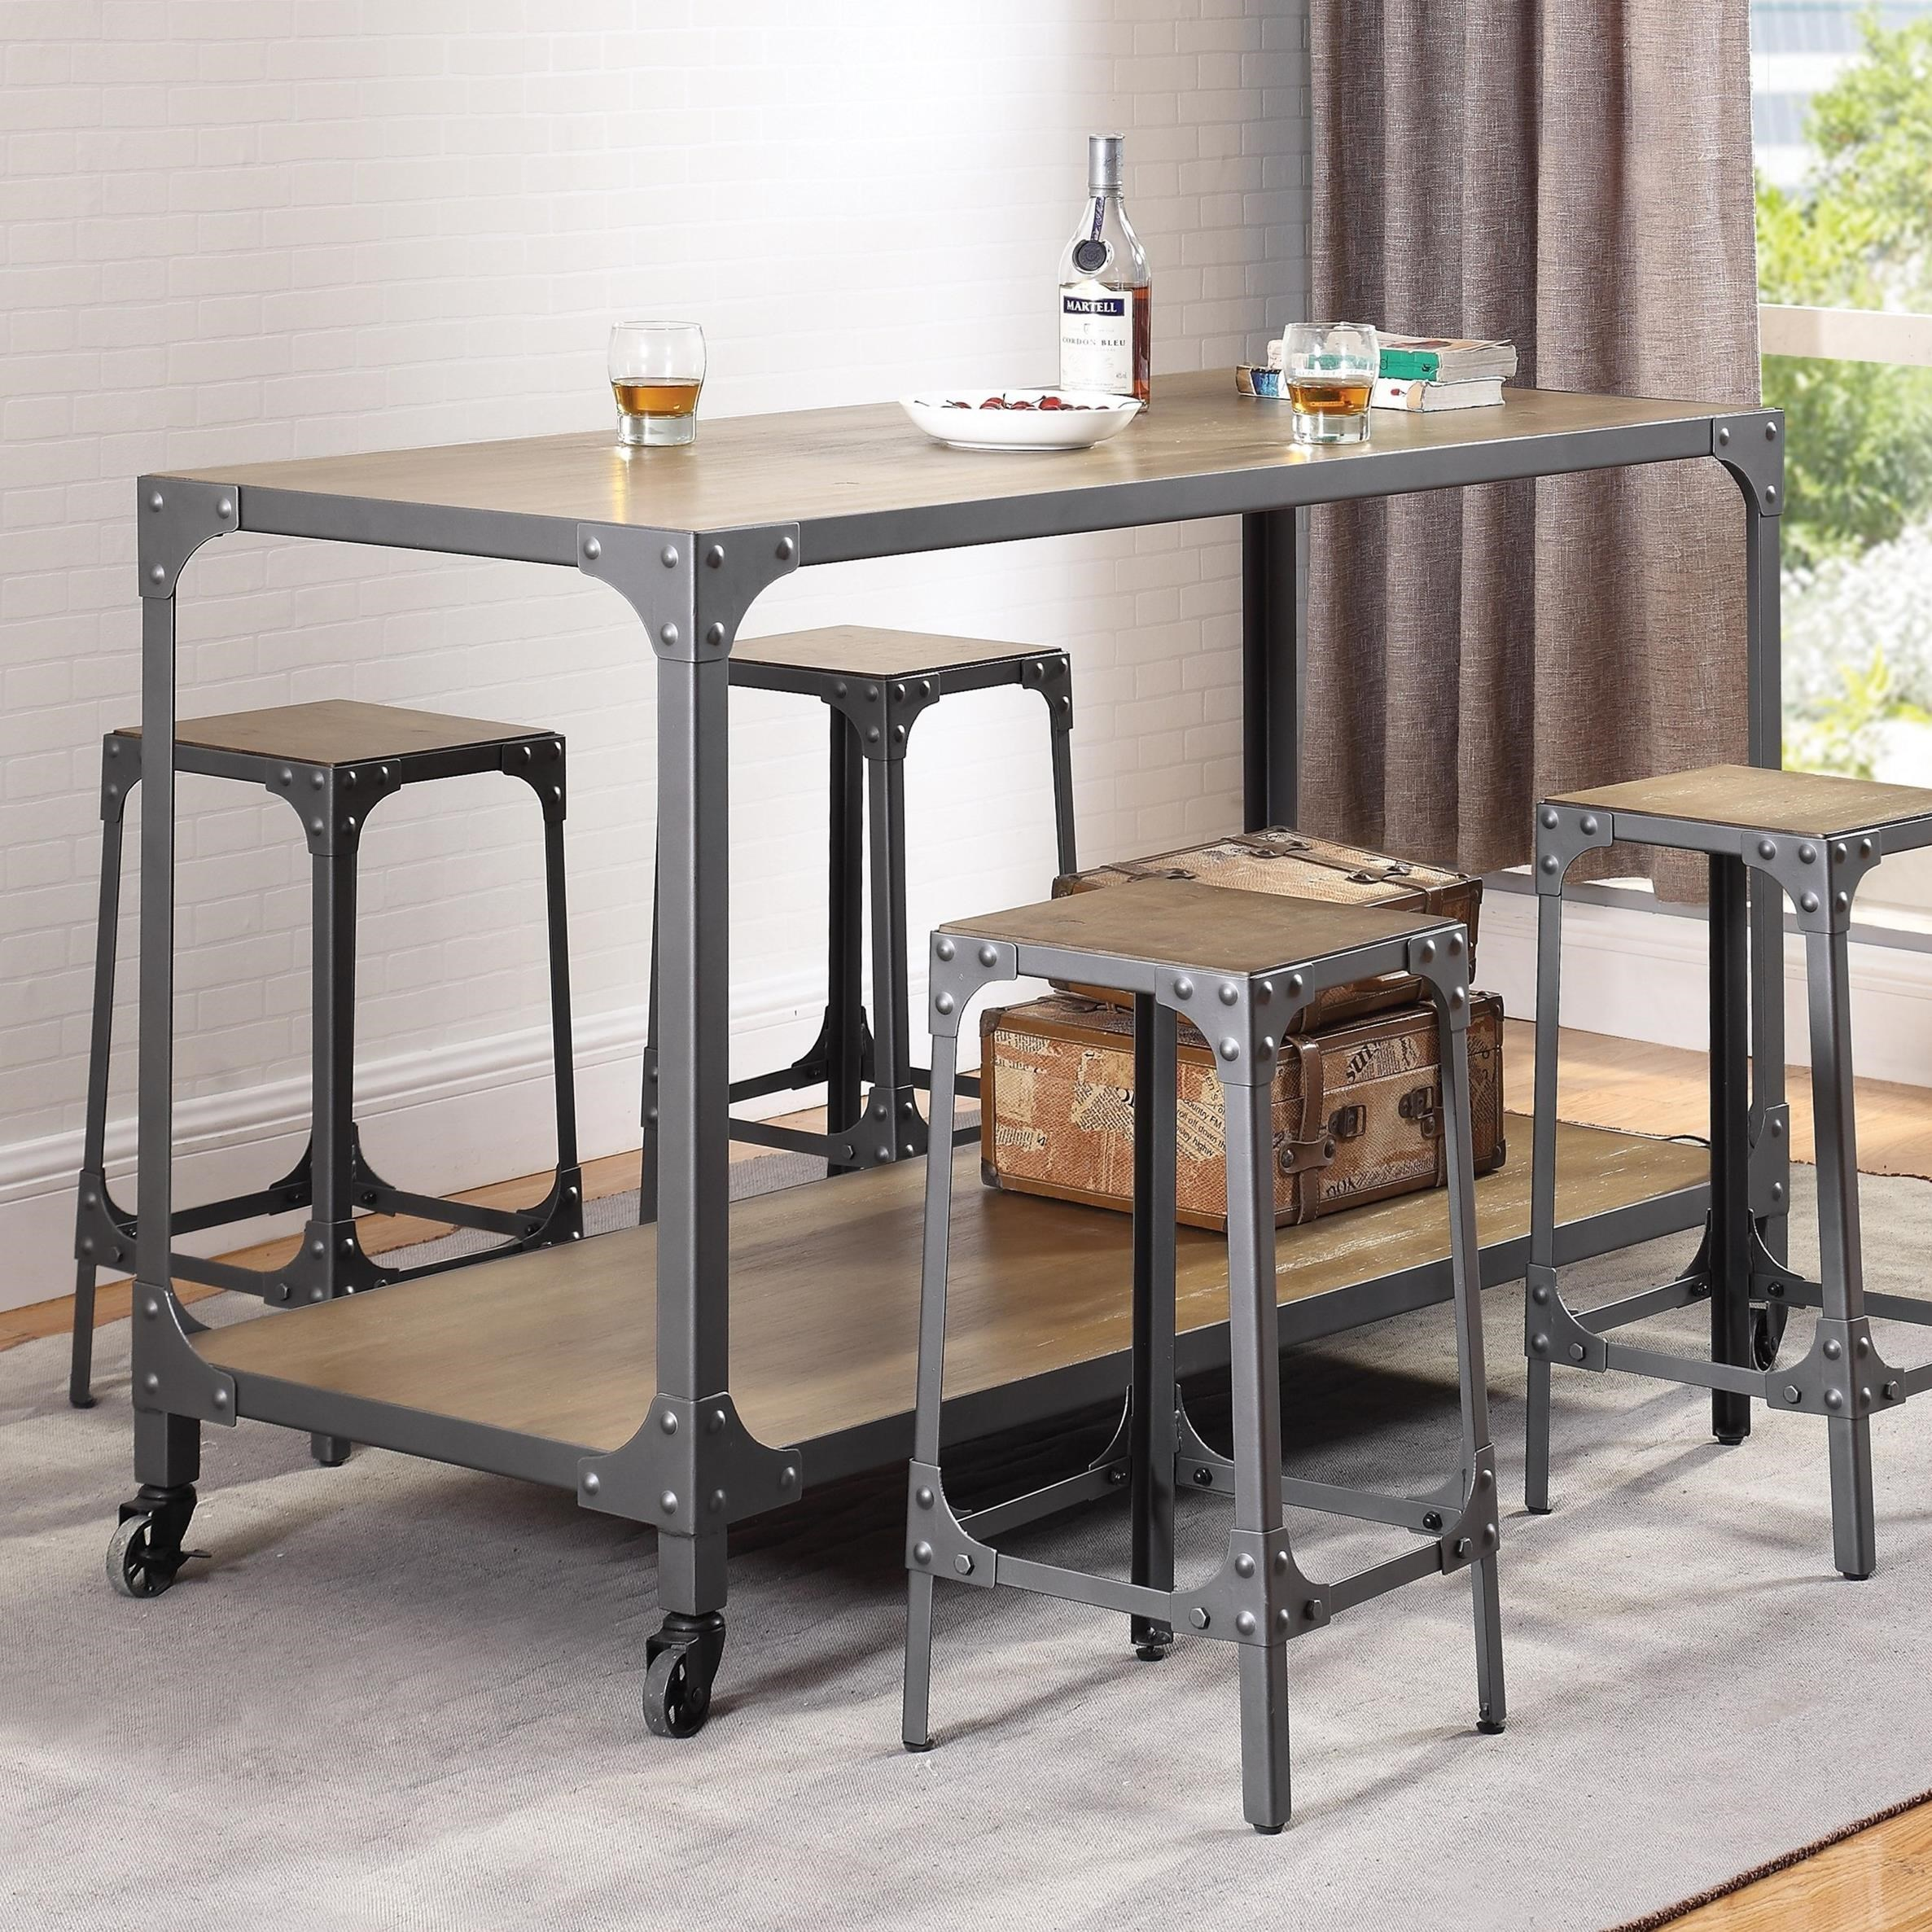 Merveilleux Coaster Kitchen Carts Rustic Kitchen Island And Stools   Coaster Fine  Furniture